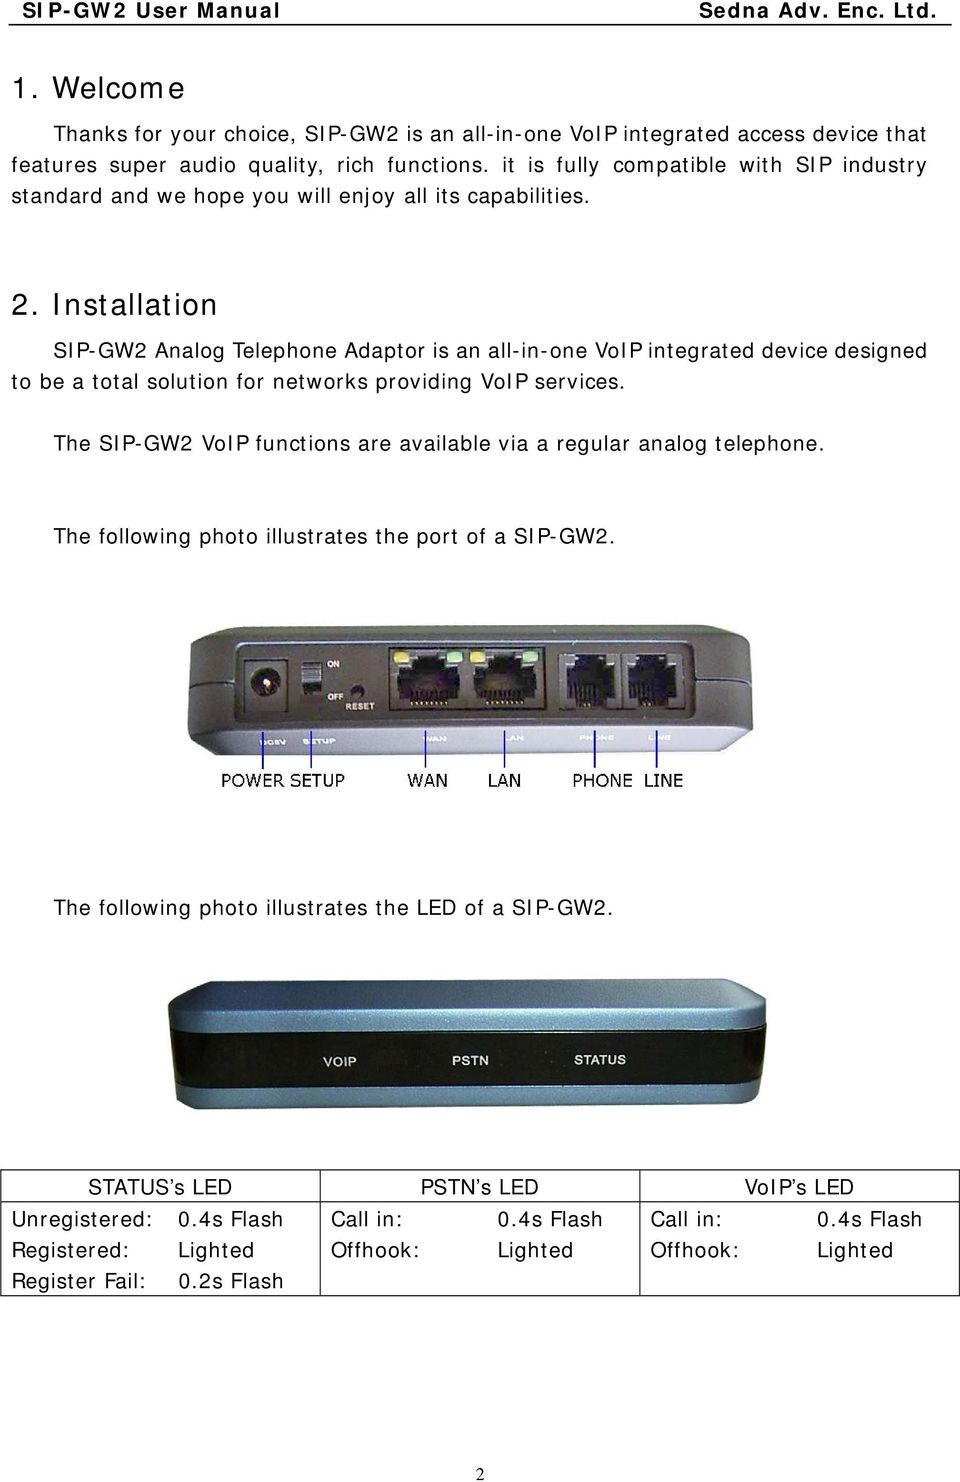 User Manual Sip Analog Telephone Adaptor Gw2 Sedna Advanced Telephones Connected To Line 2 Will Now See The Voip Adapter As They Installation Is An All In One Integrated